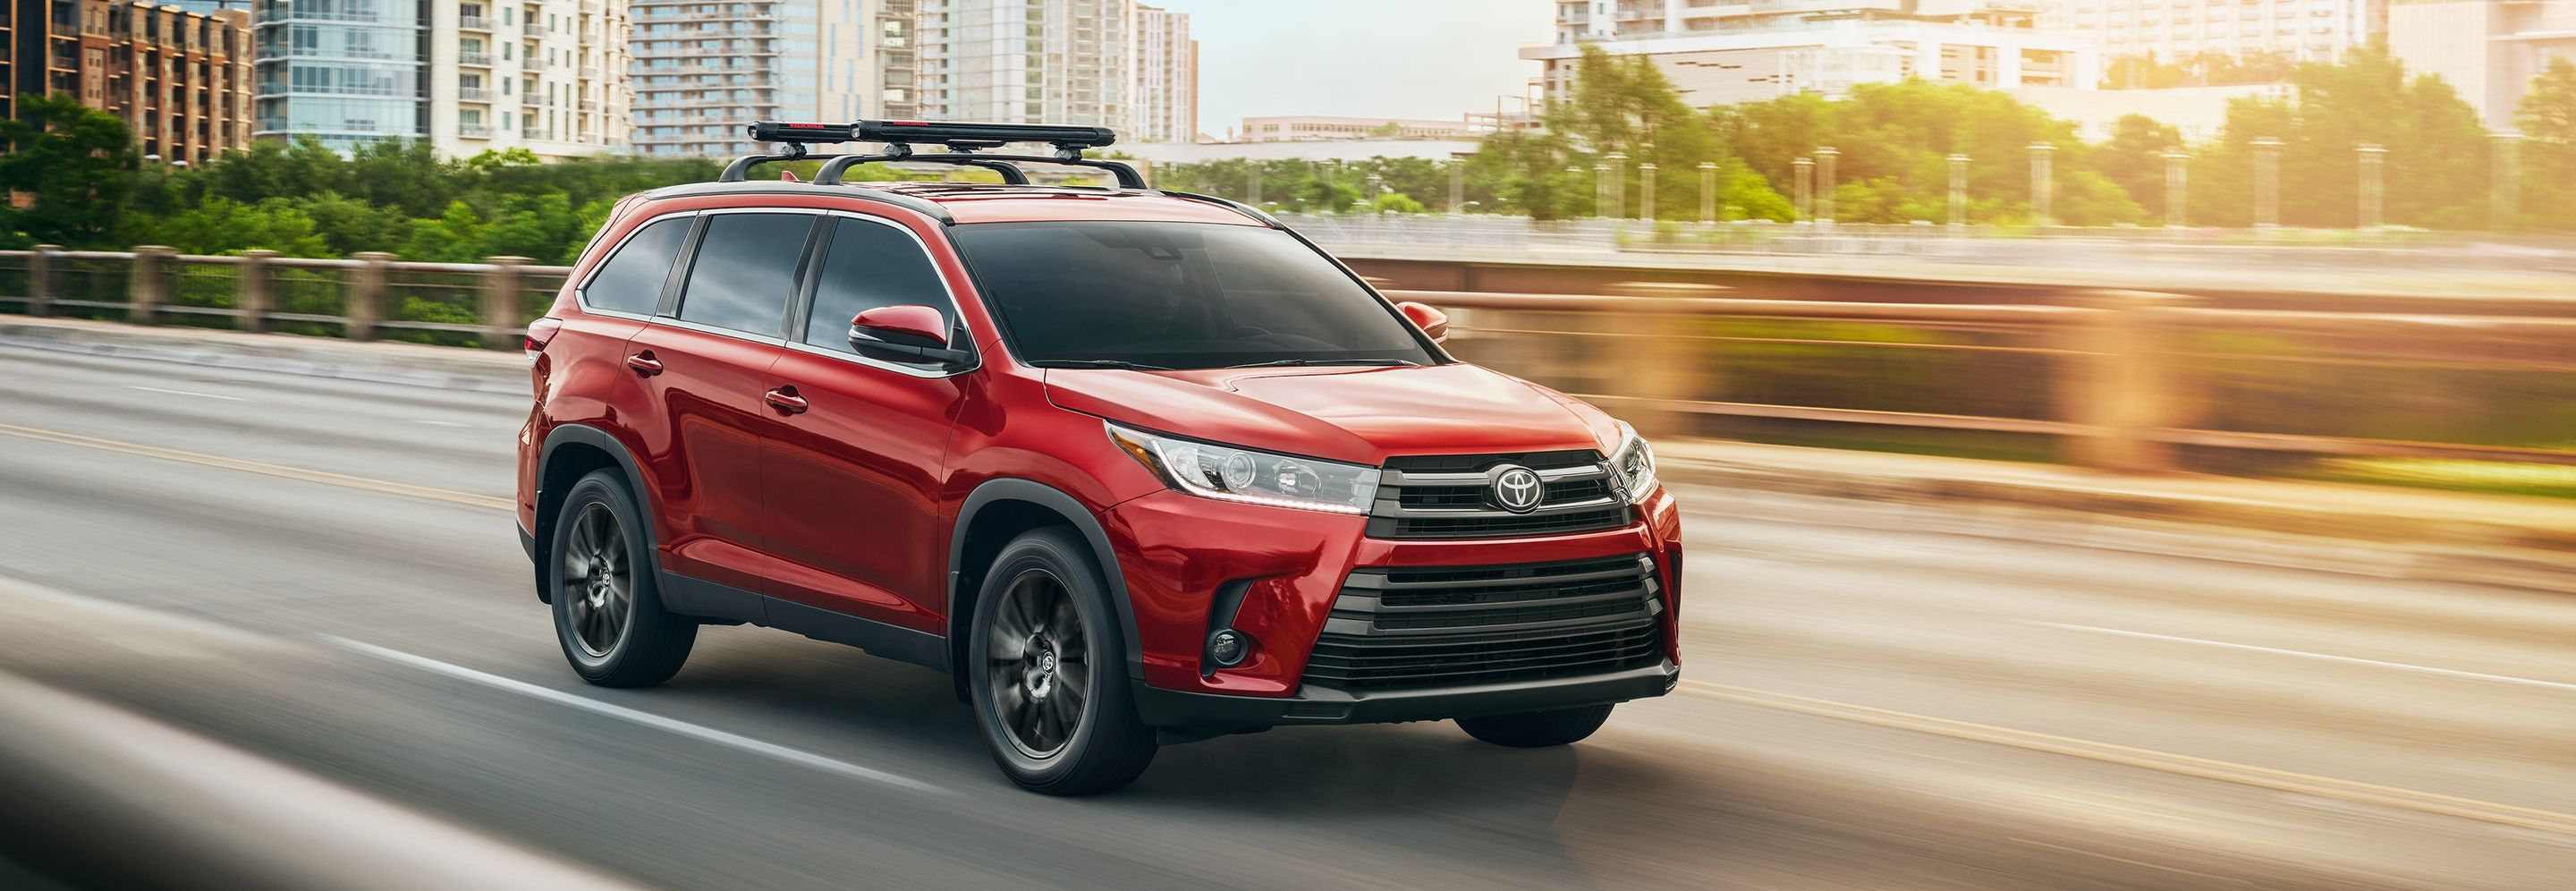 2019 Toyota Highlander for Sale near Ann Arbor, MI